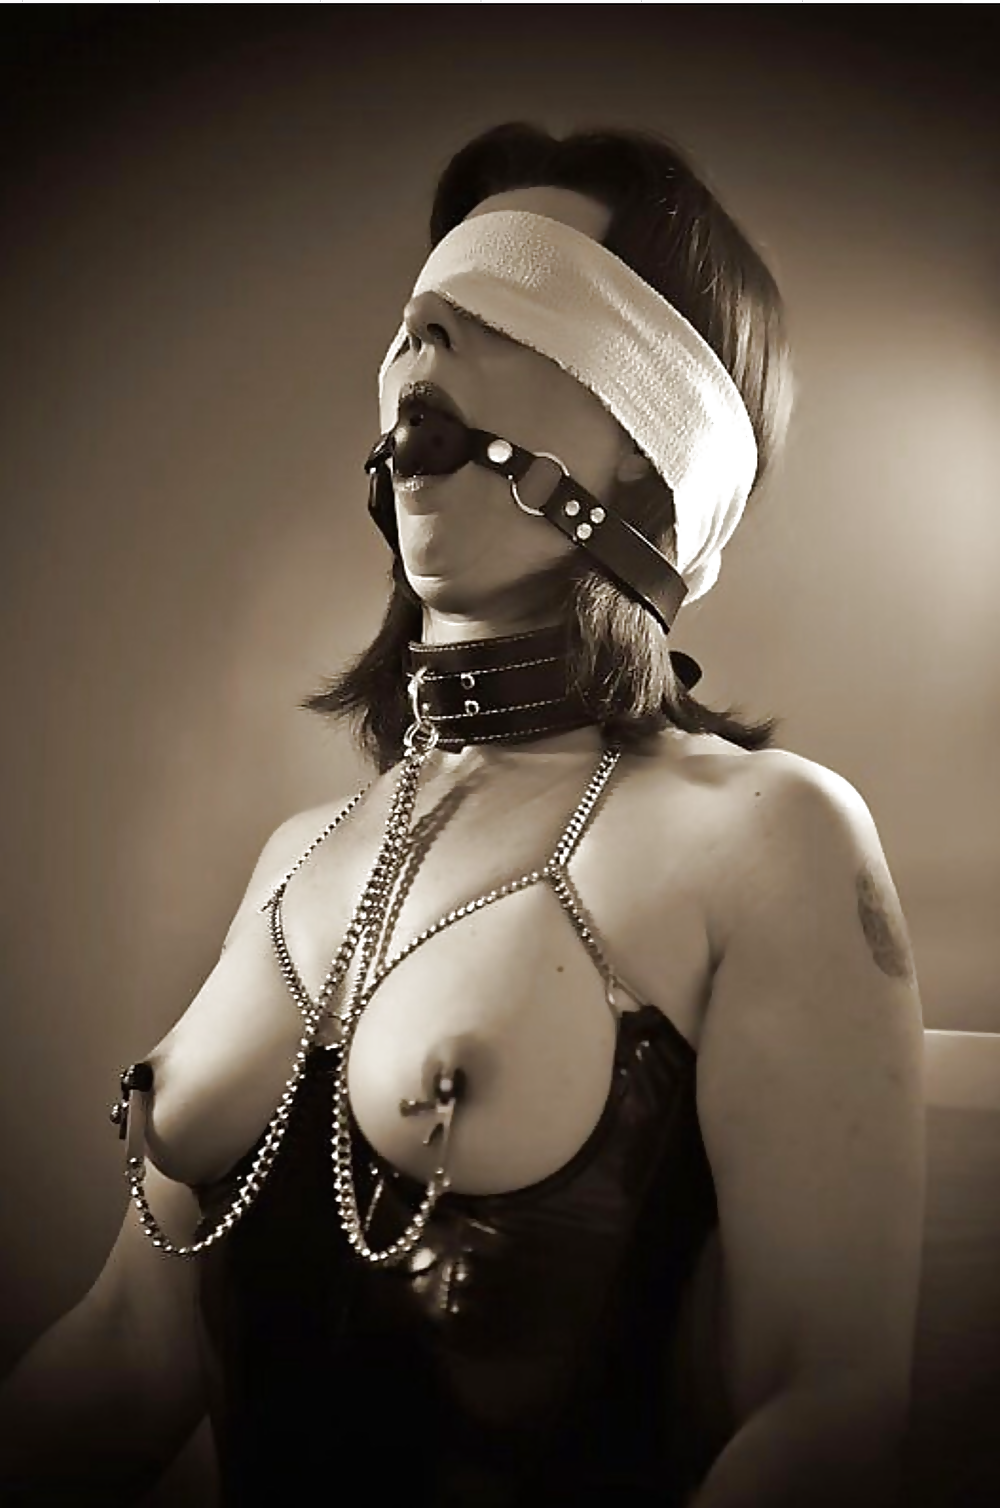 Erotic blindfolded sex